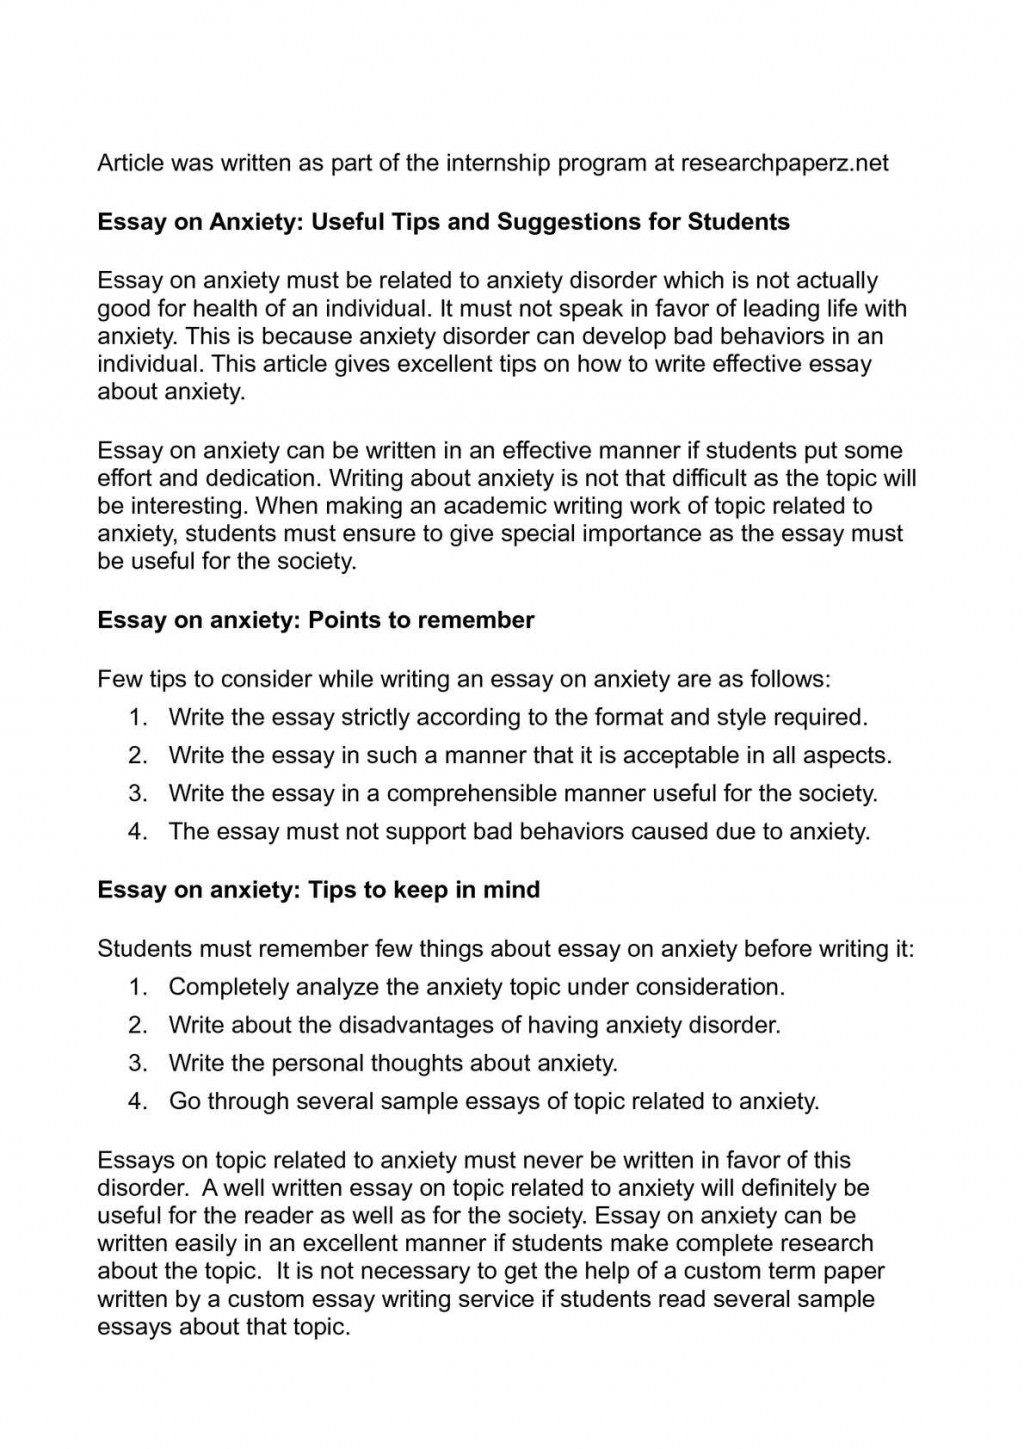 001 Anxiety Essay P1 Imposing Thesis Outline Titles Large